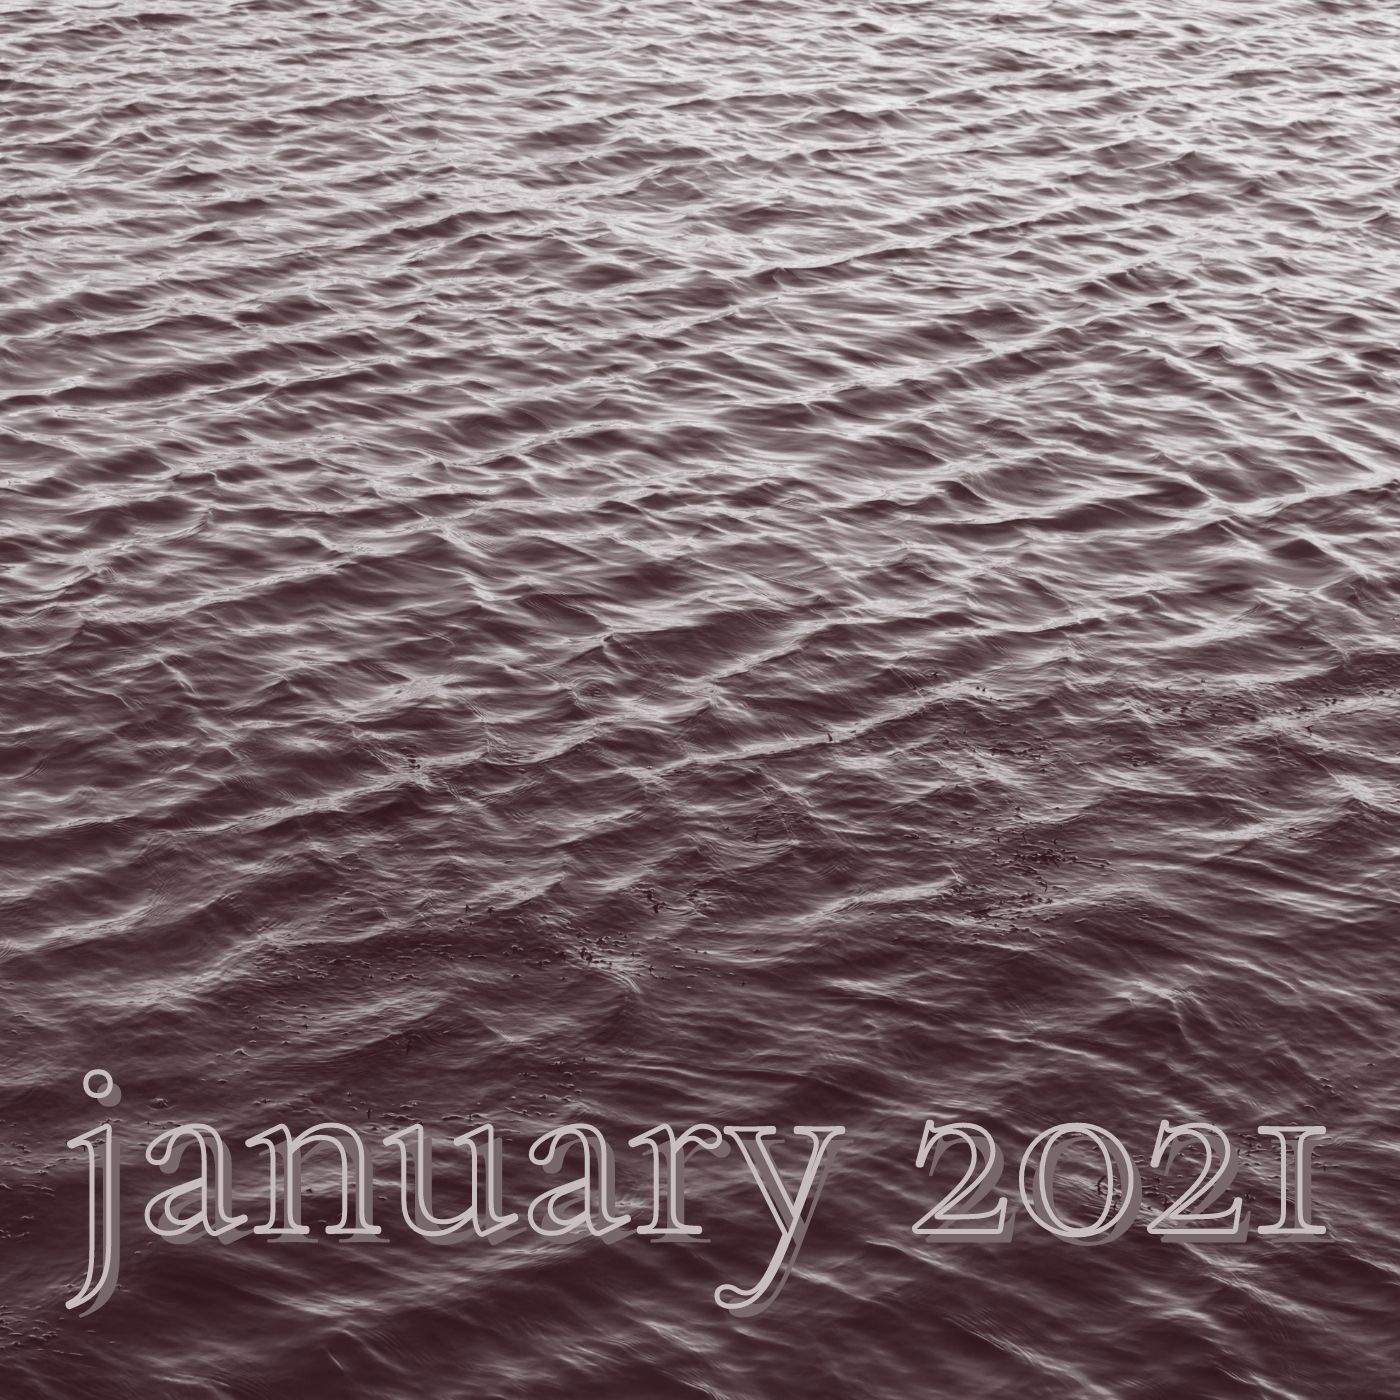 a square image of rippling water in purple tones reading january 2021 at the bottom